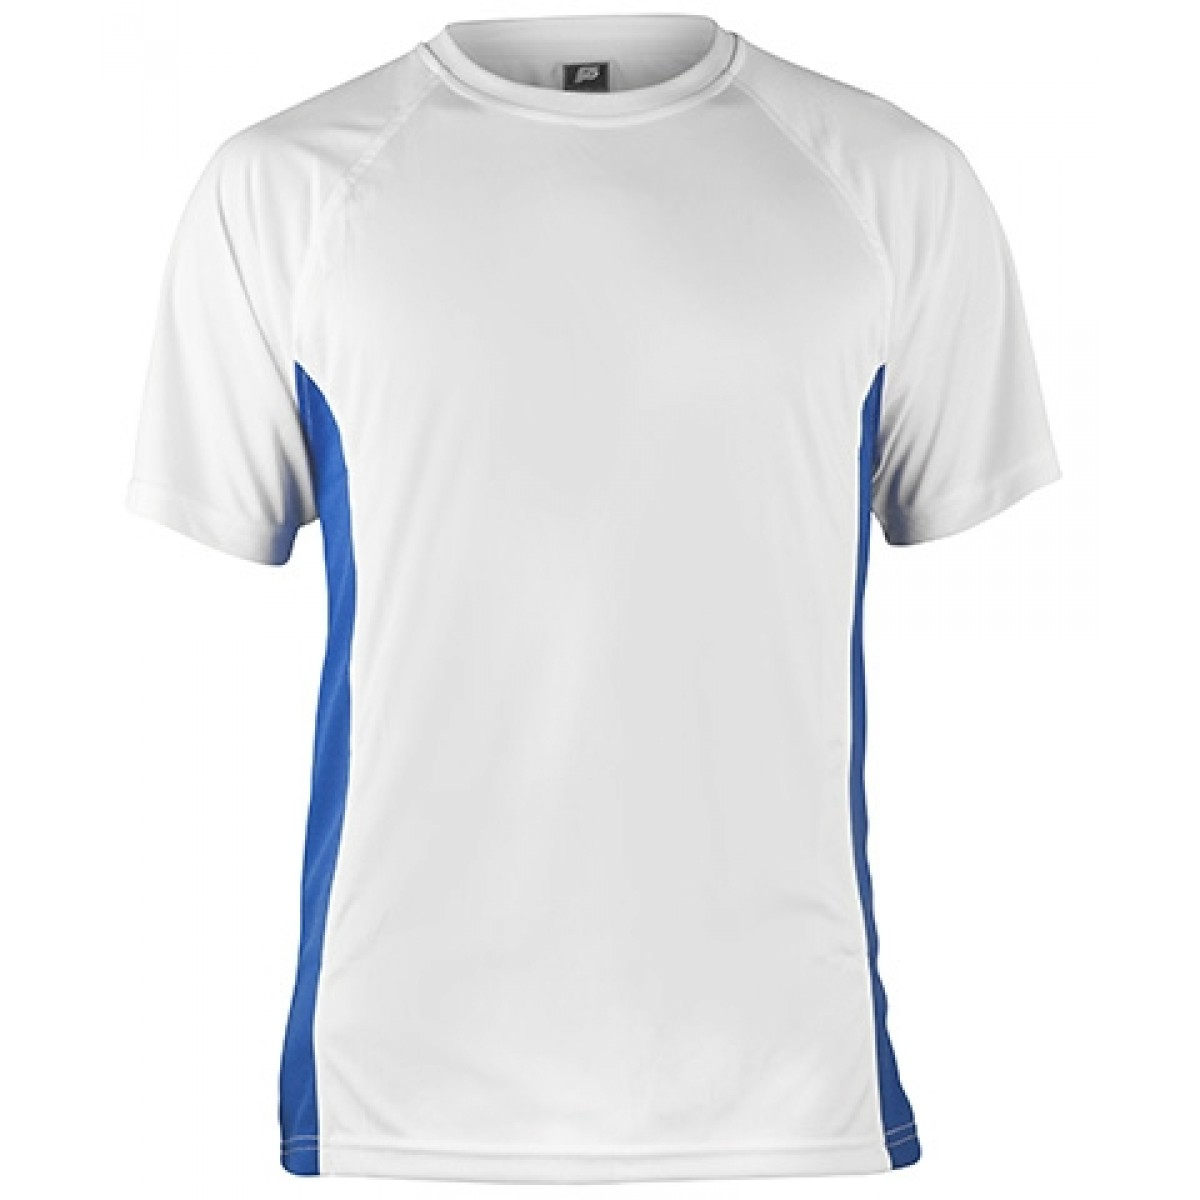 Short Sleeve White Performance With Blue Side Insert-White/Blue-3XL